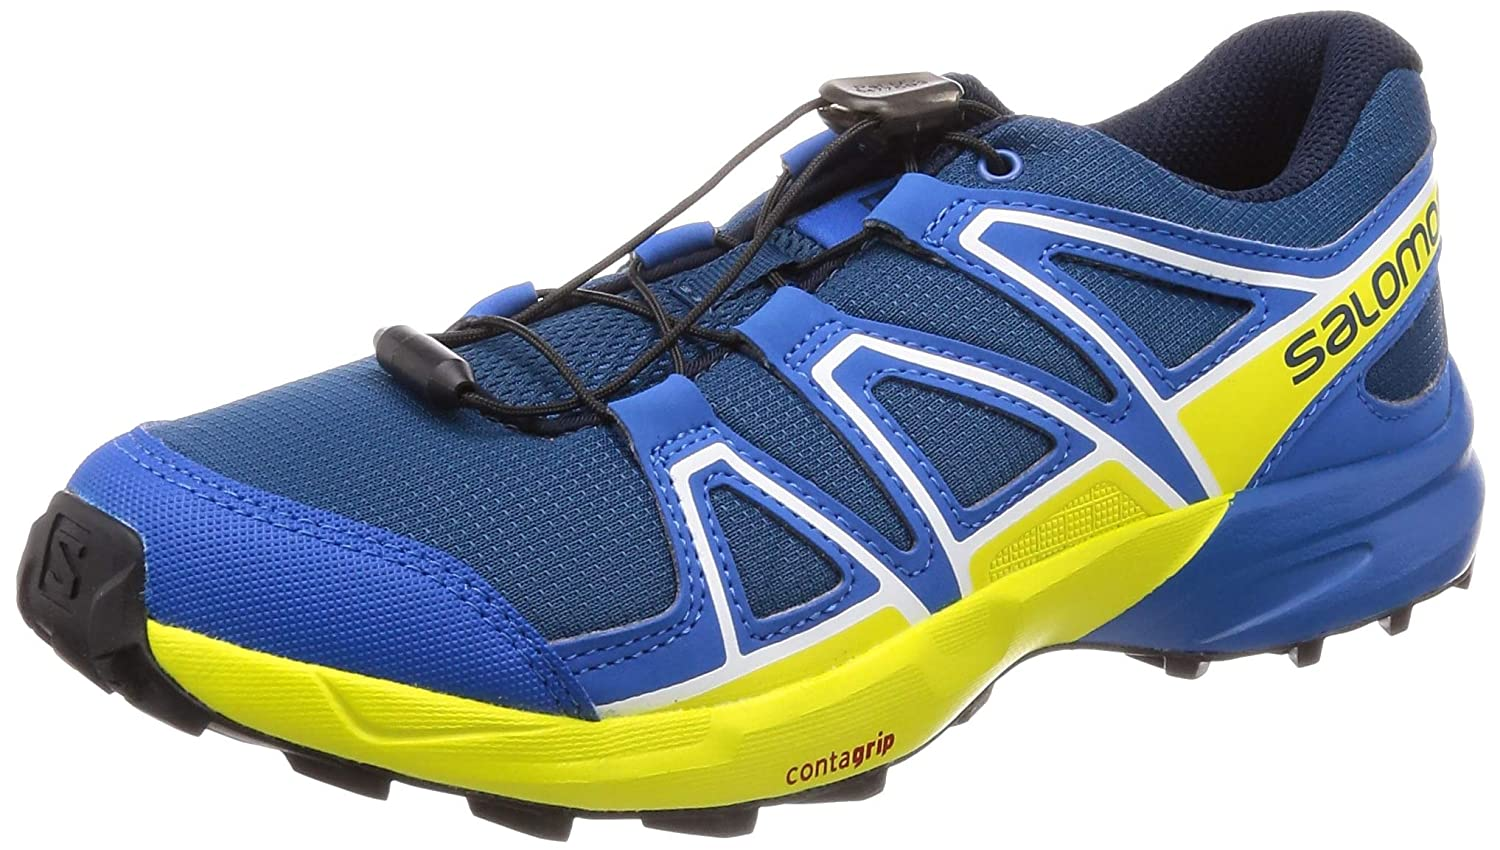 Salomon Speedcross J, Zapatillas de Running para Asfalto Unisex Niños: Amazon.es: Zapatos y complementos